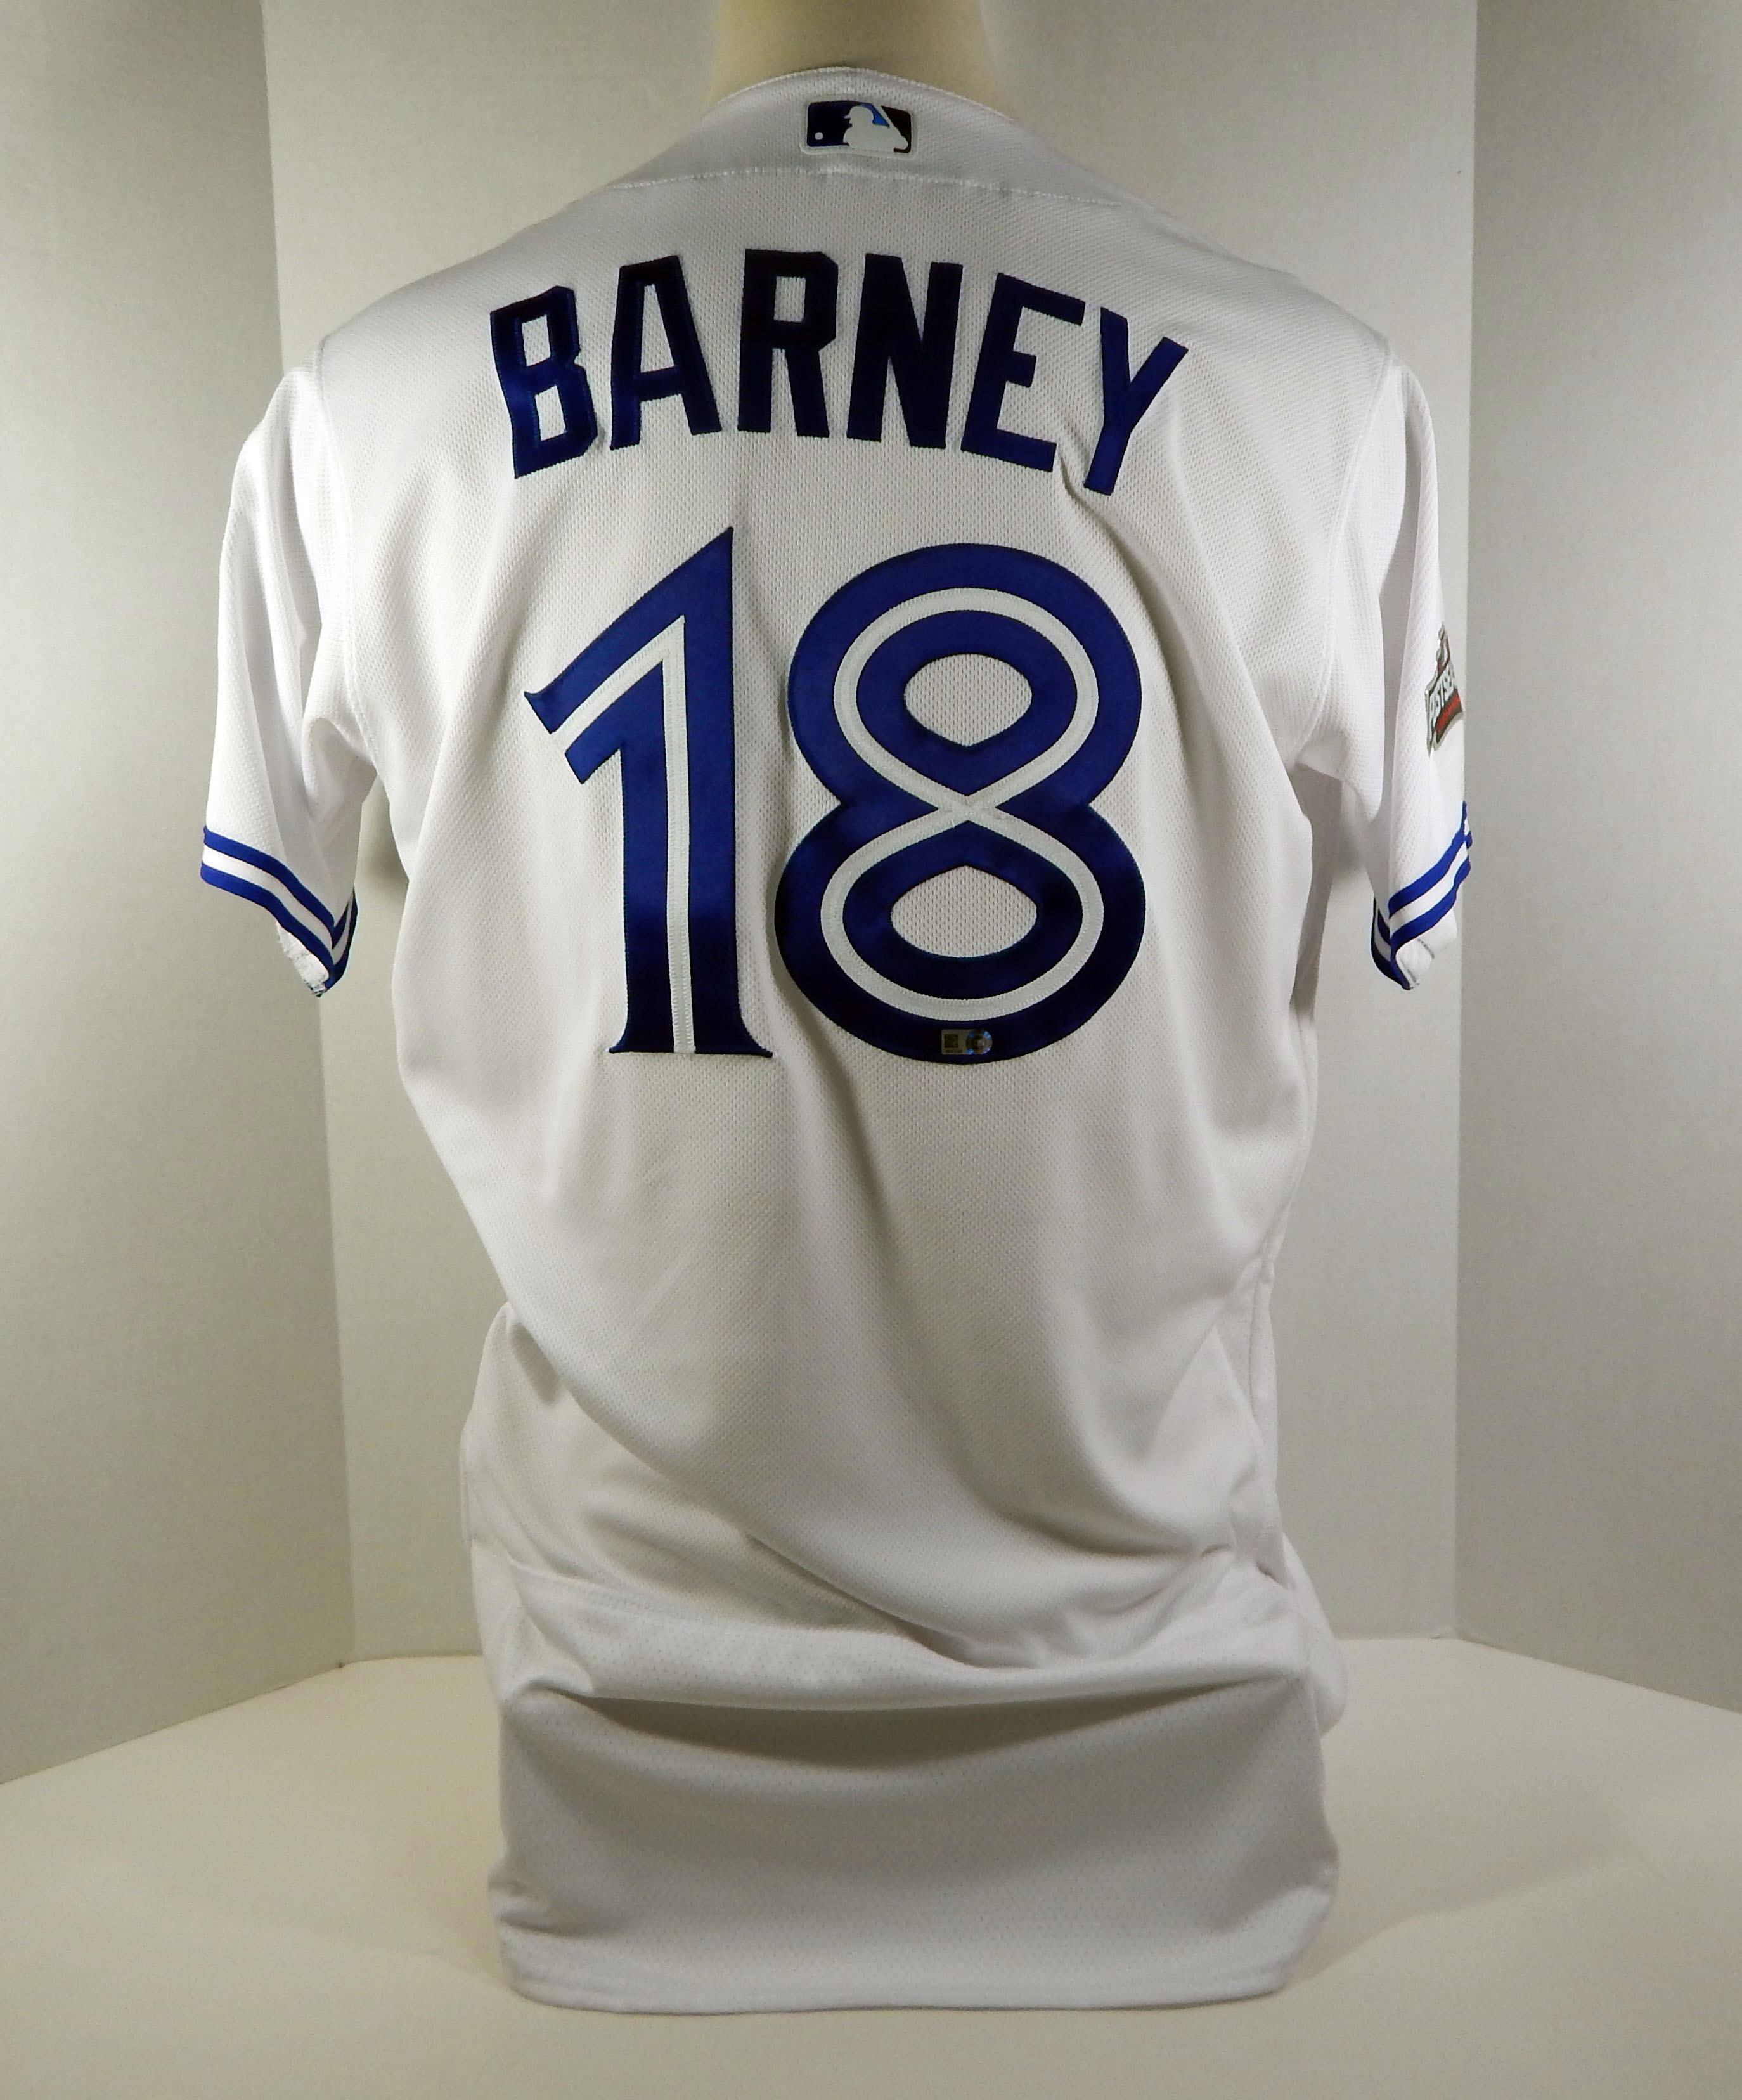 62dcc1532 2016 Toronto Blue Jays Darwin Barney  18 Game Issued White Jersey Playoff  Patch